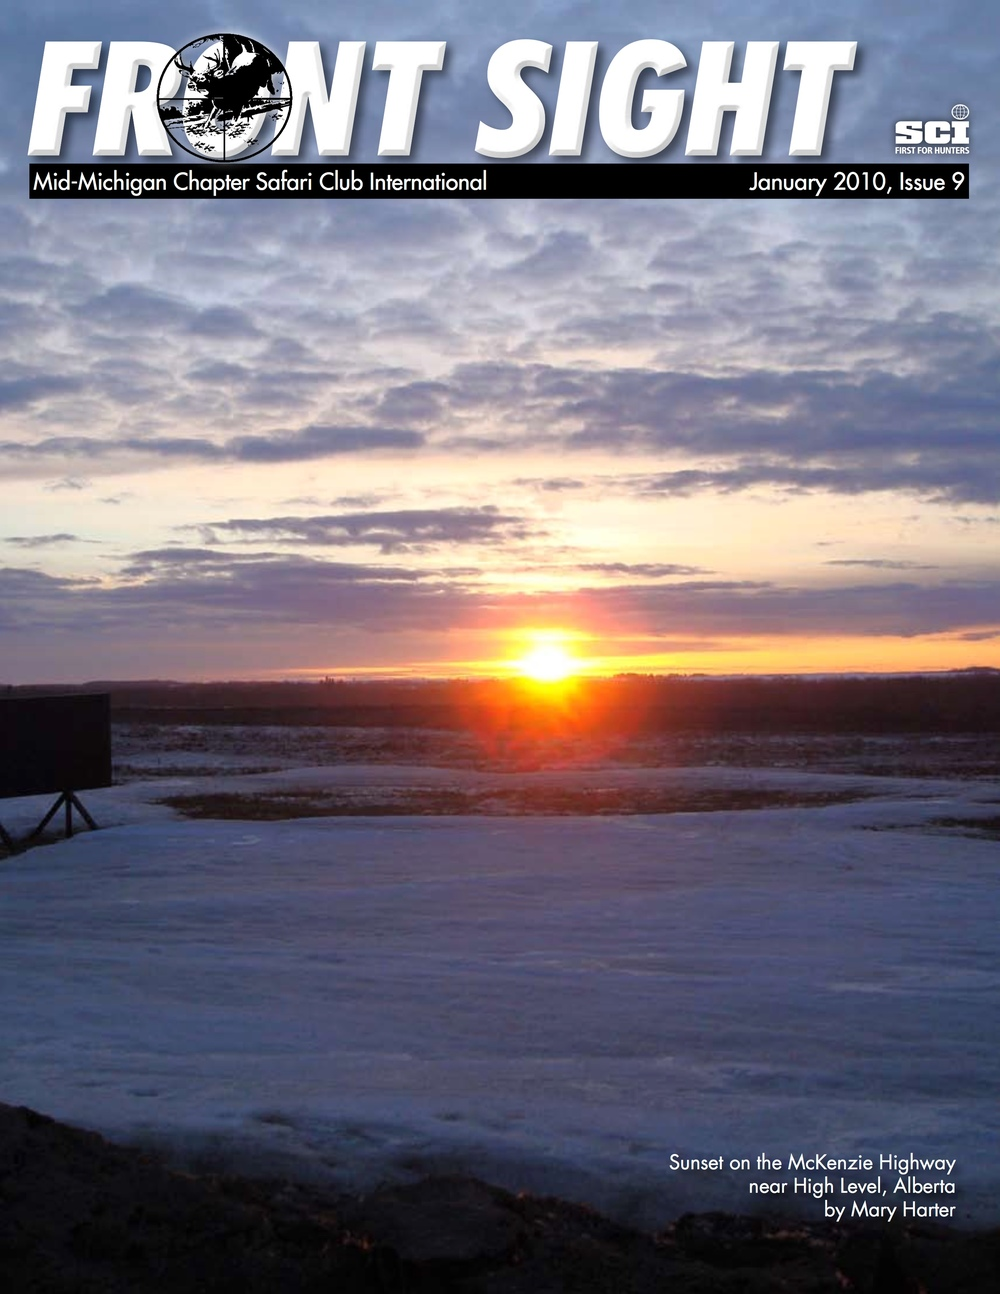 Issue 9, January 2010